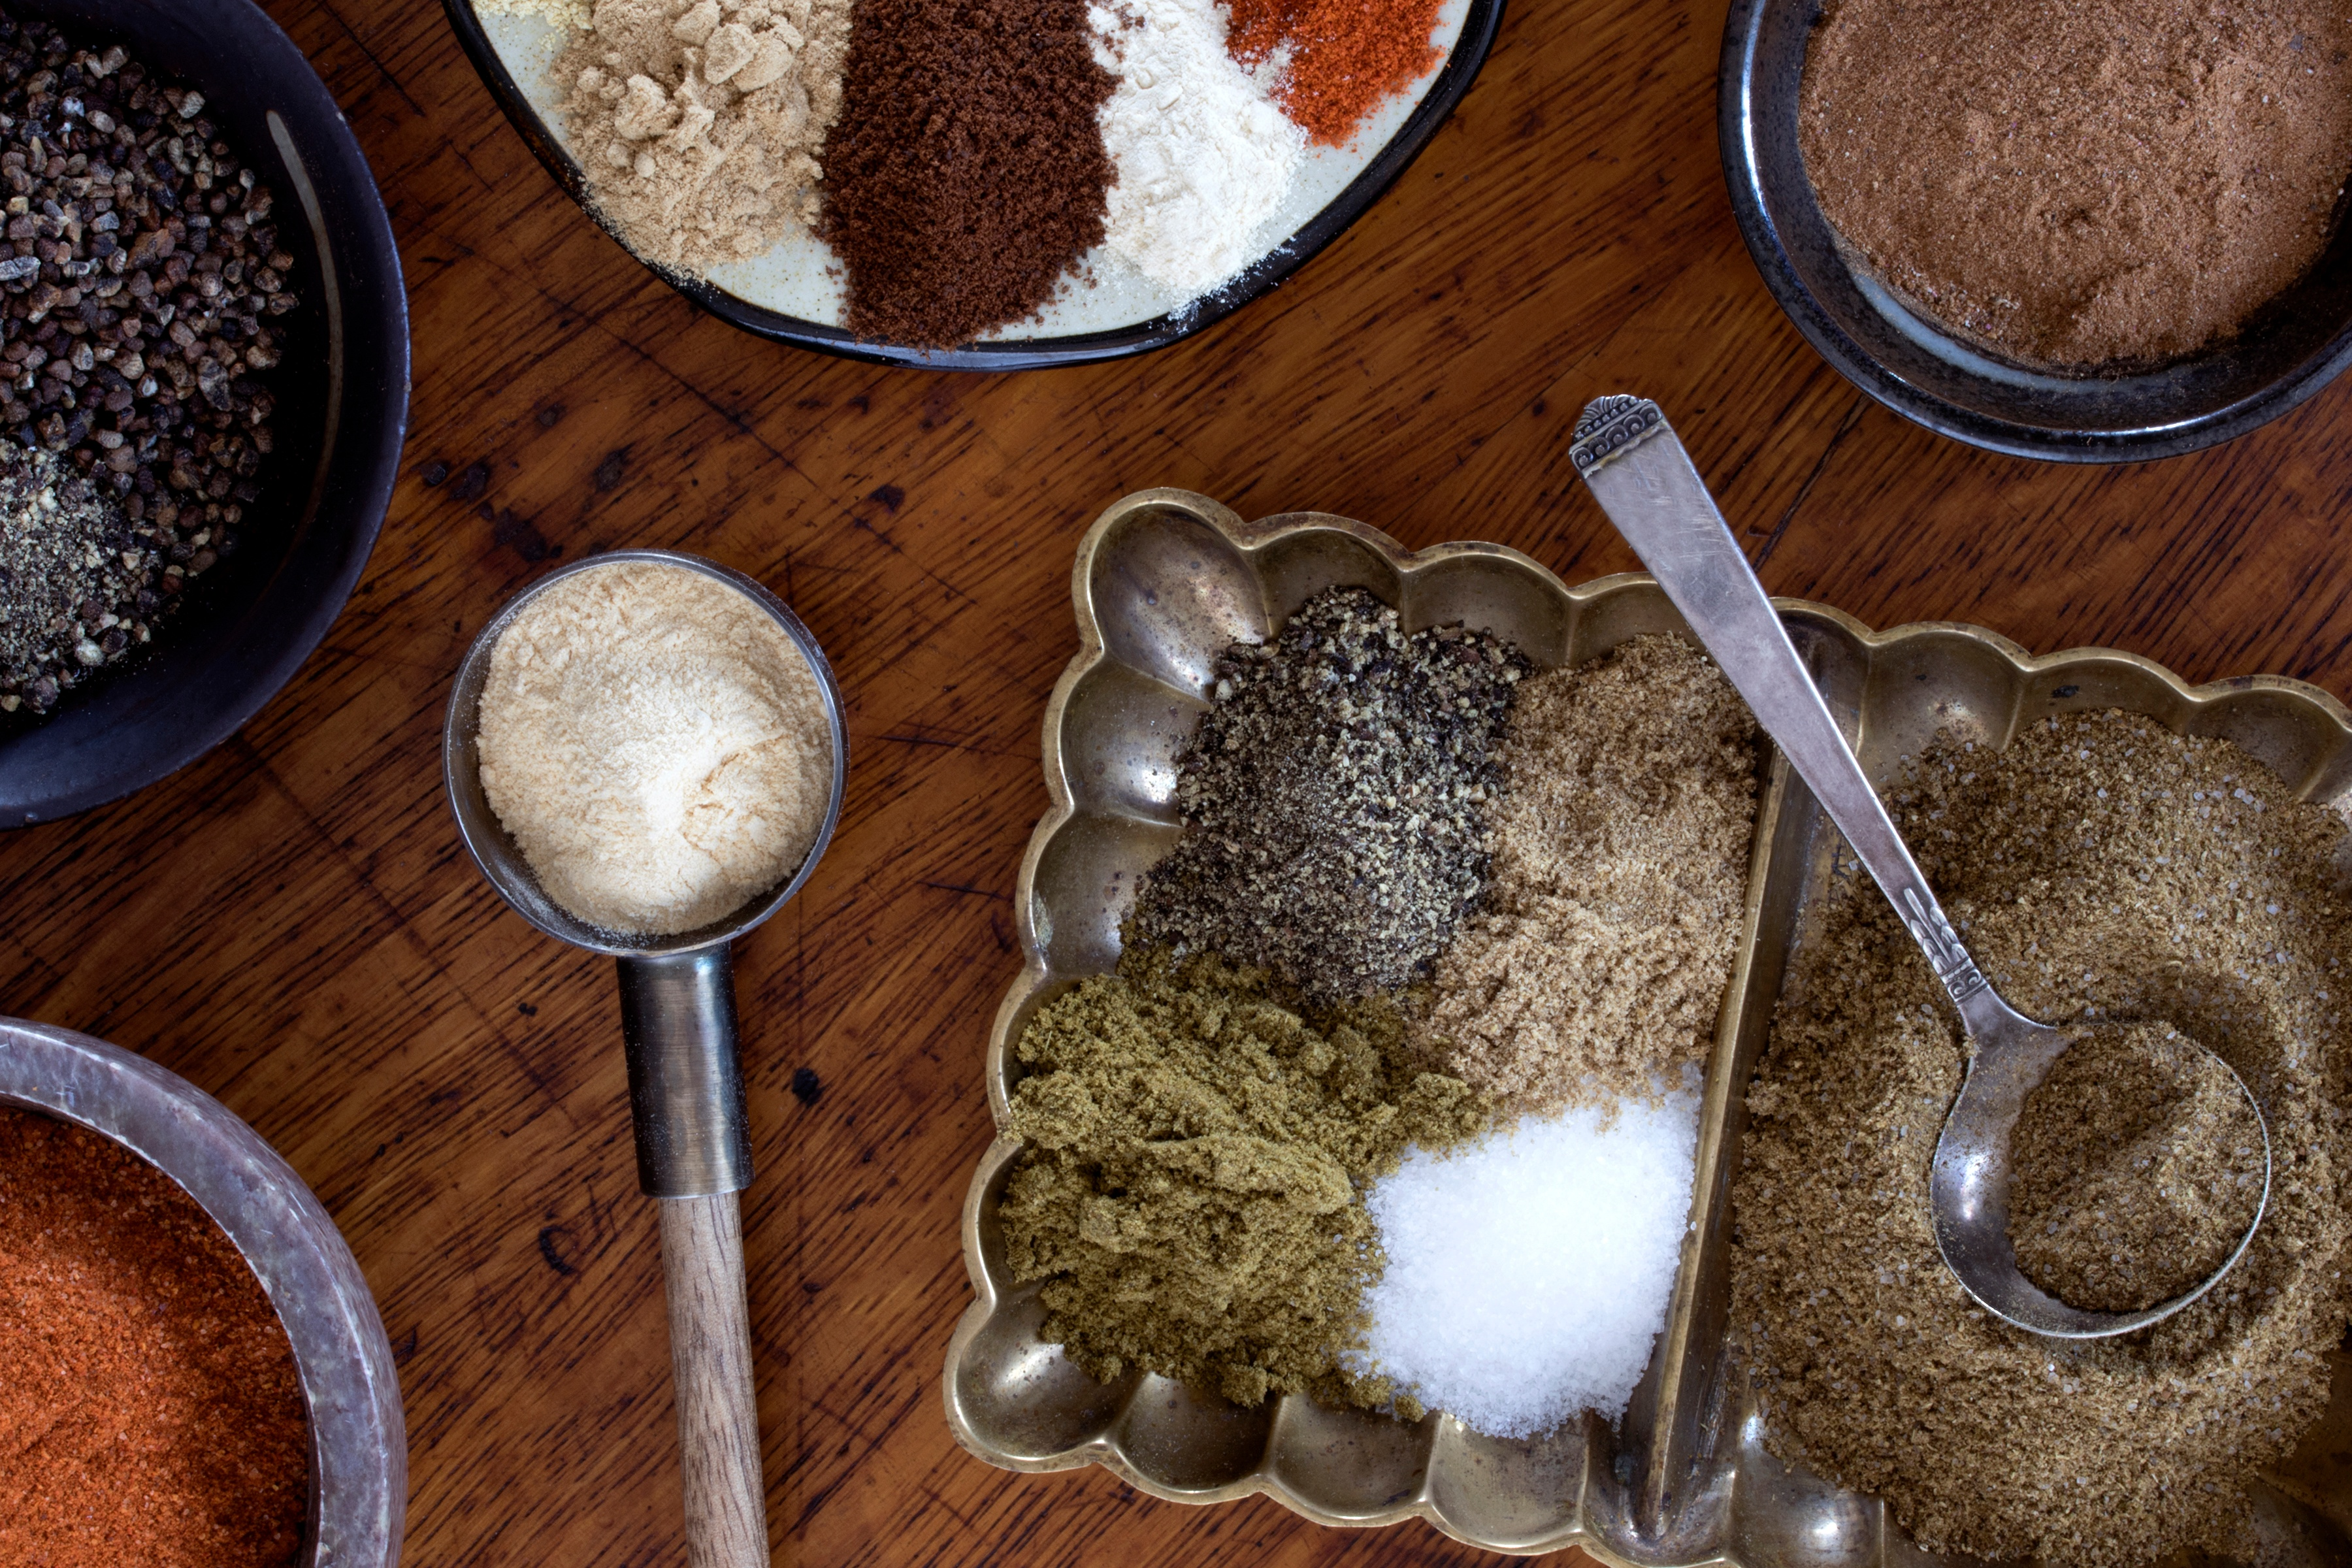 Lots of different spices, herb powders, and spice blends in bowls and containers with spoons on table